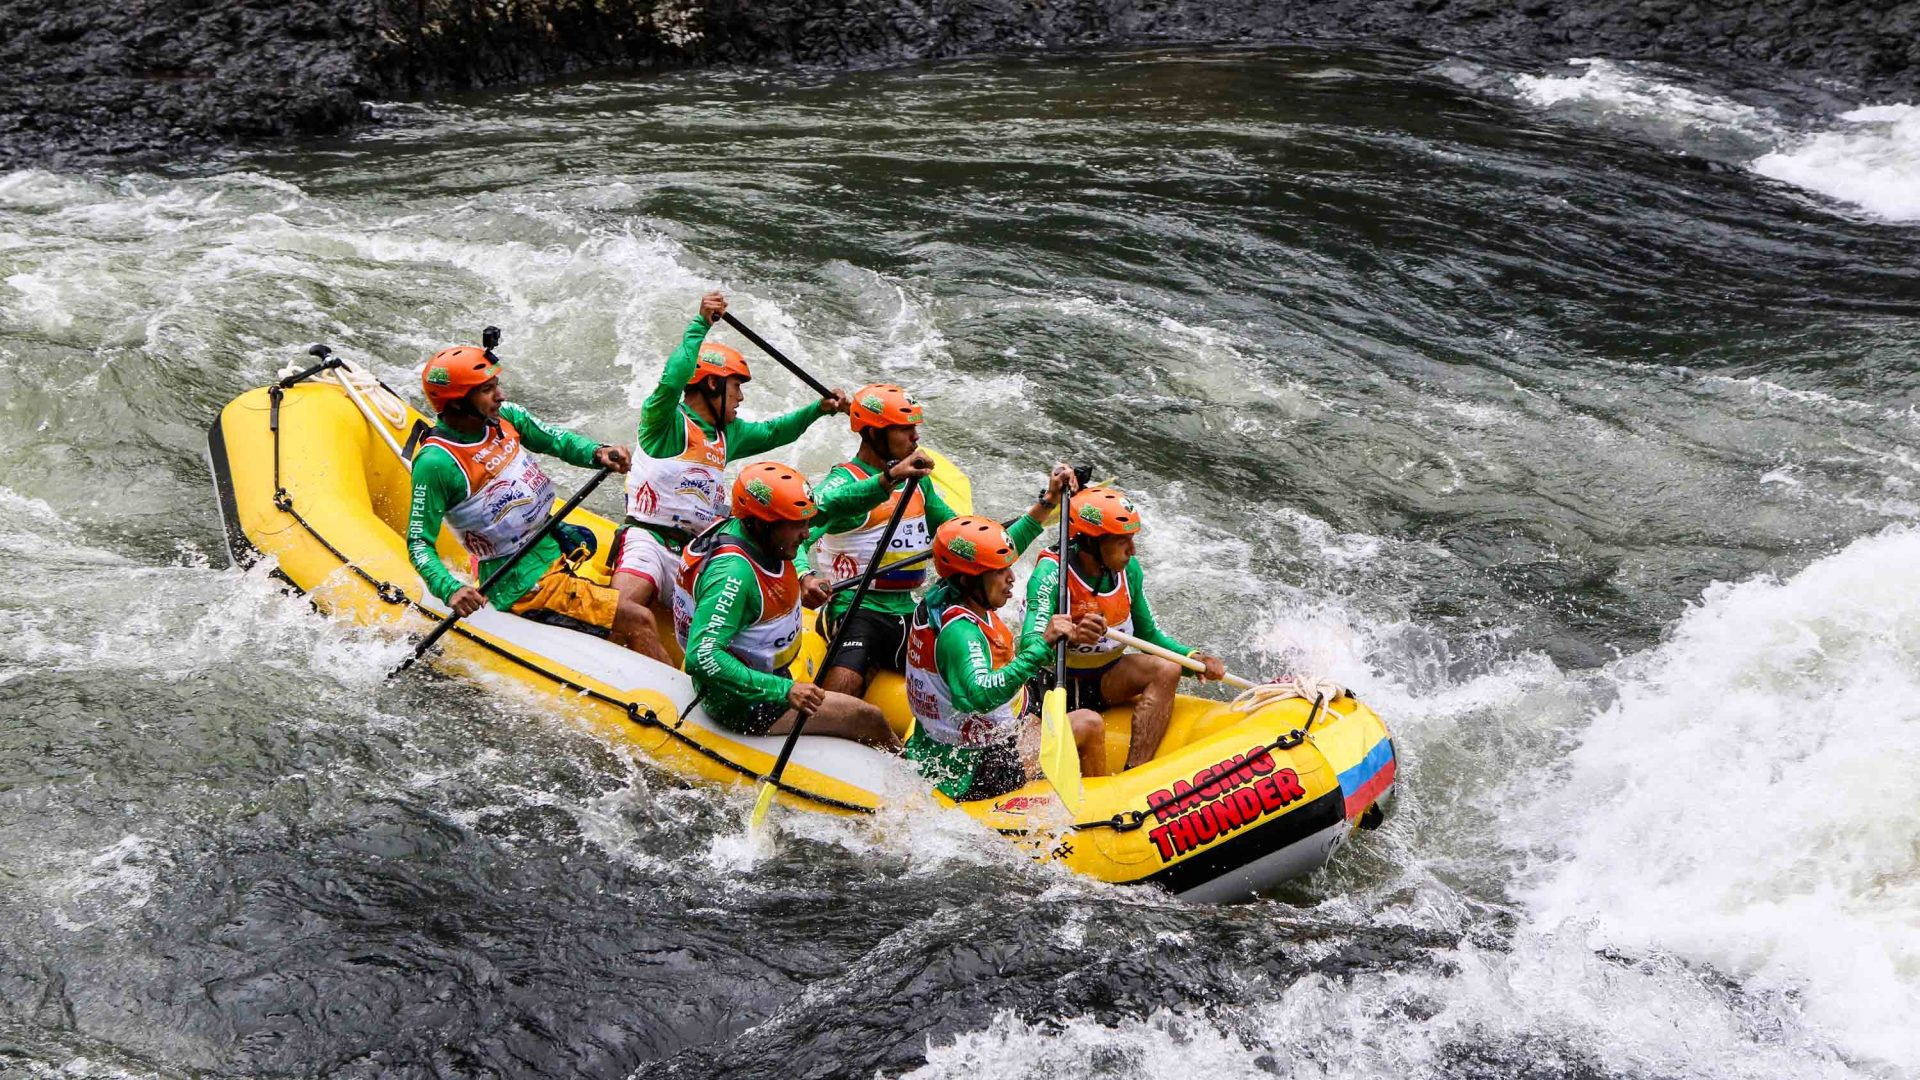 Paddling for peace: Meet the ex-rebels turned Colombian rafting guides